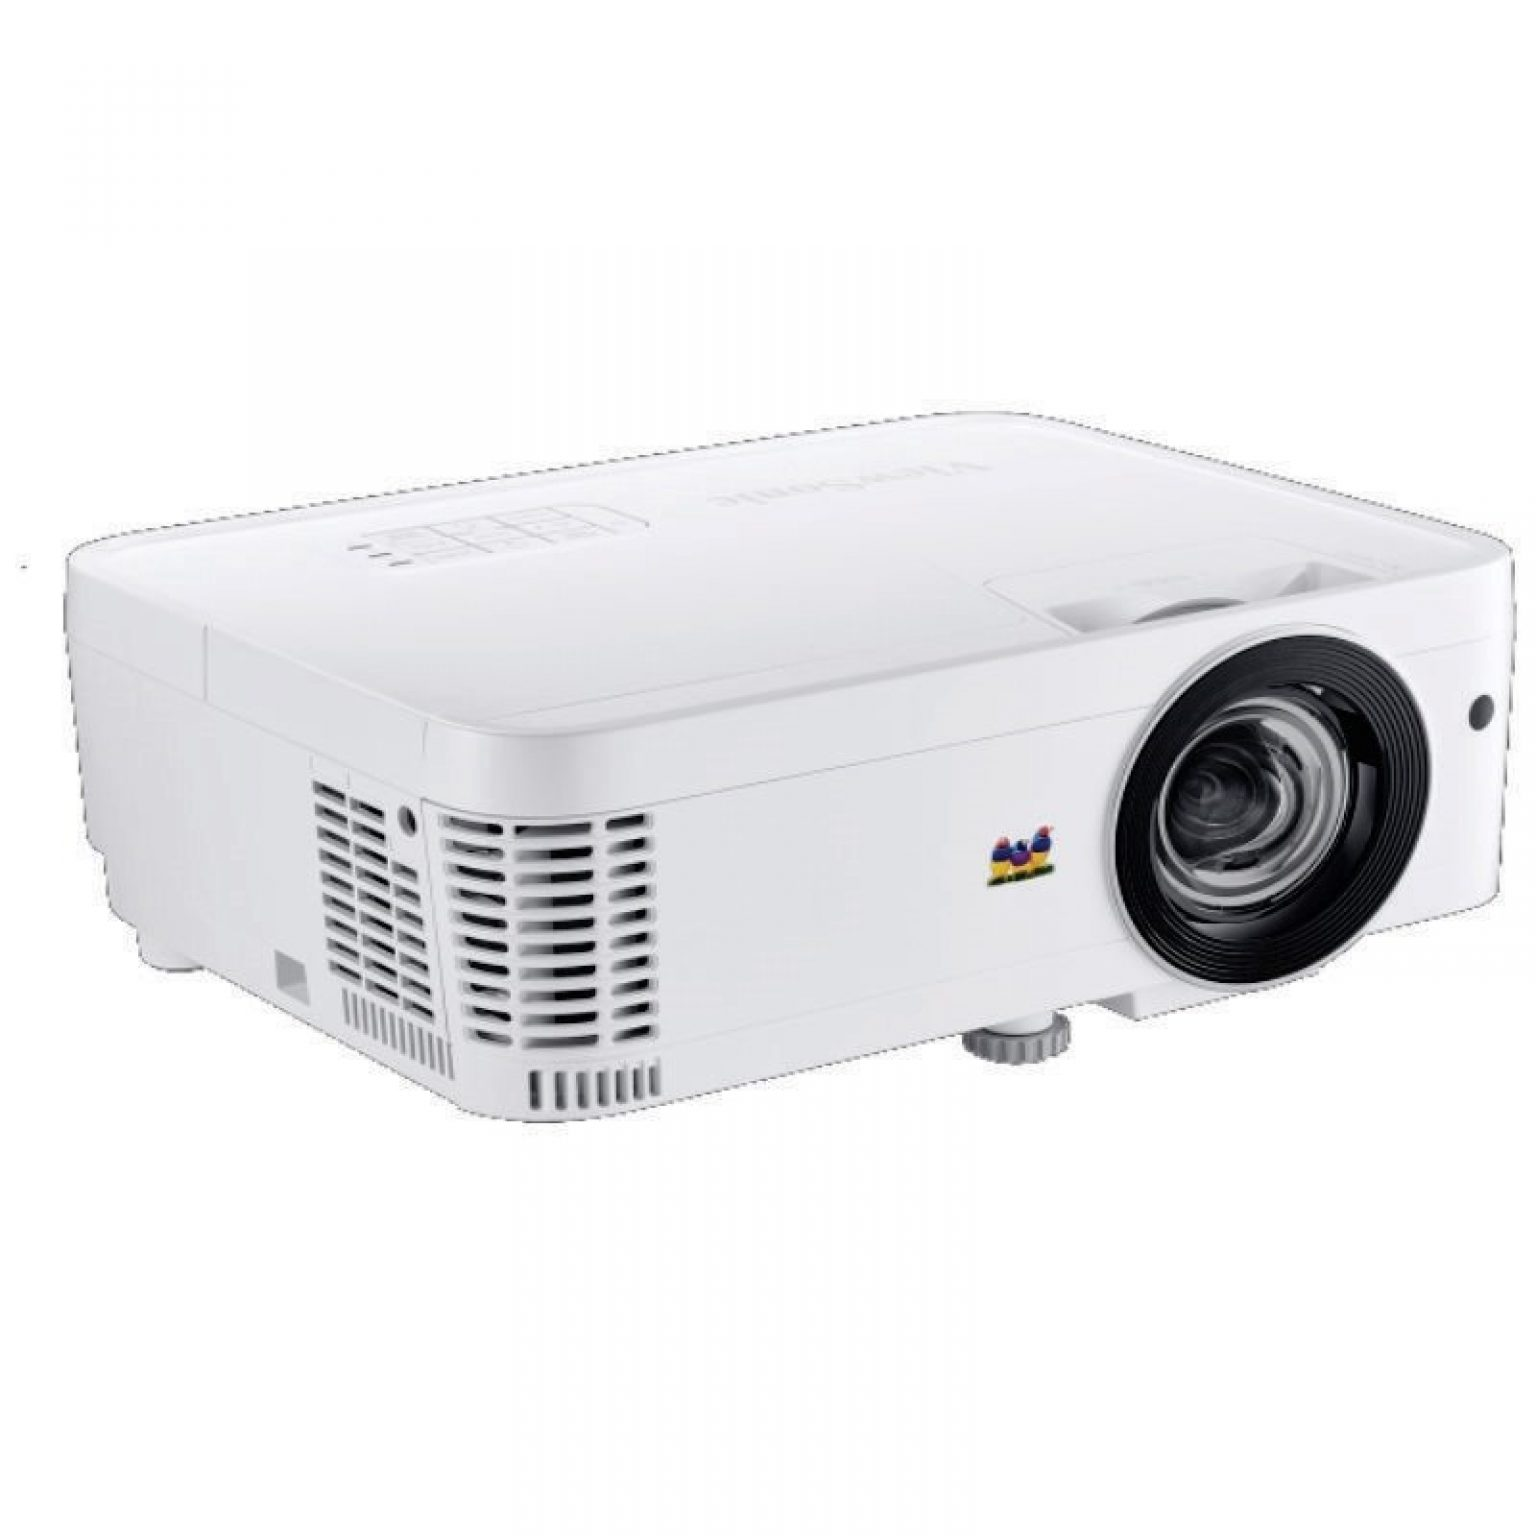 VIEWSONIC - Projector PS501X